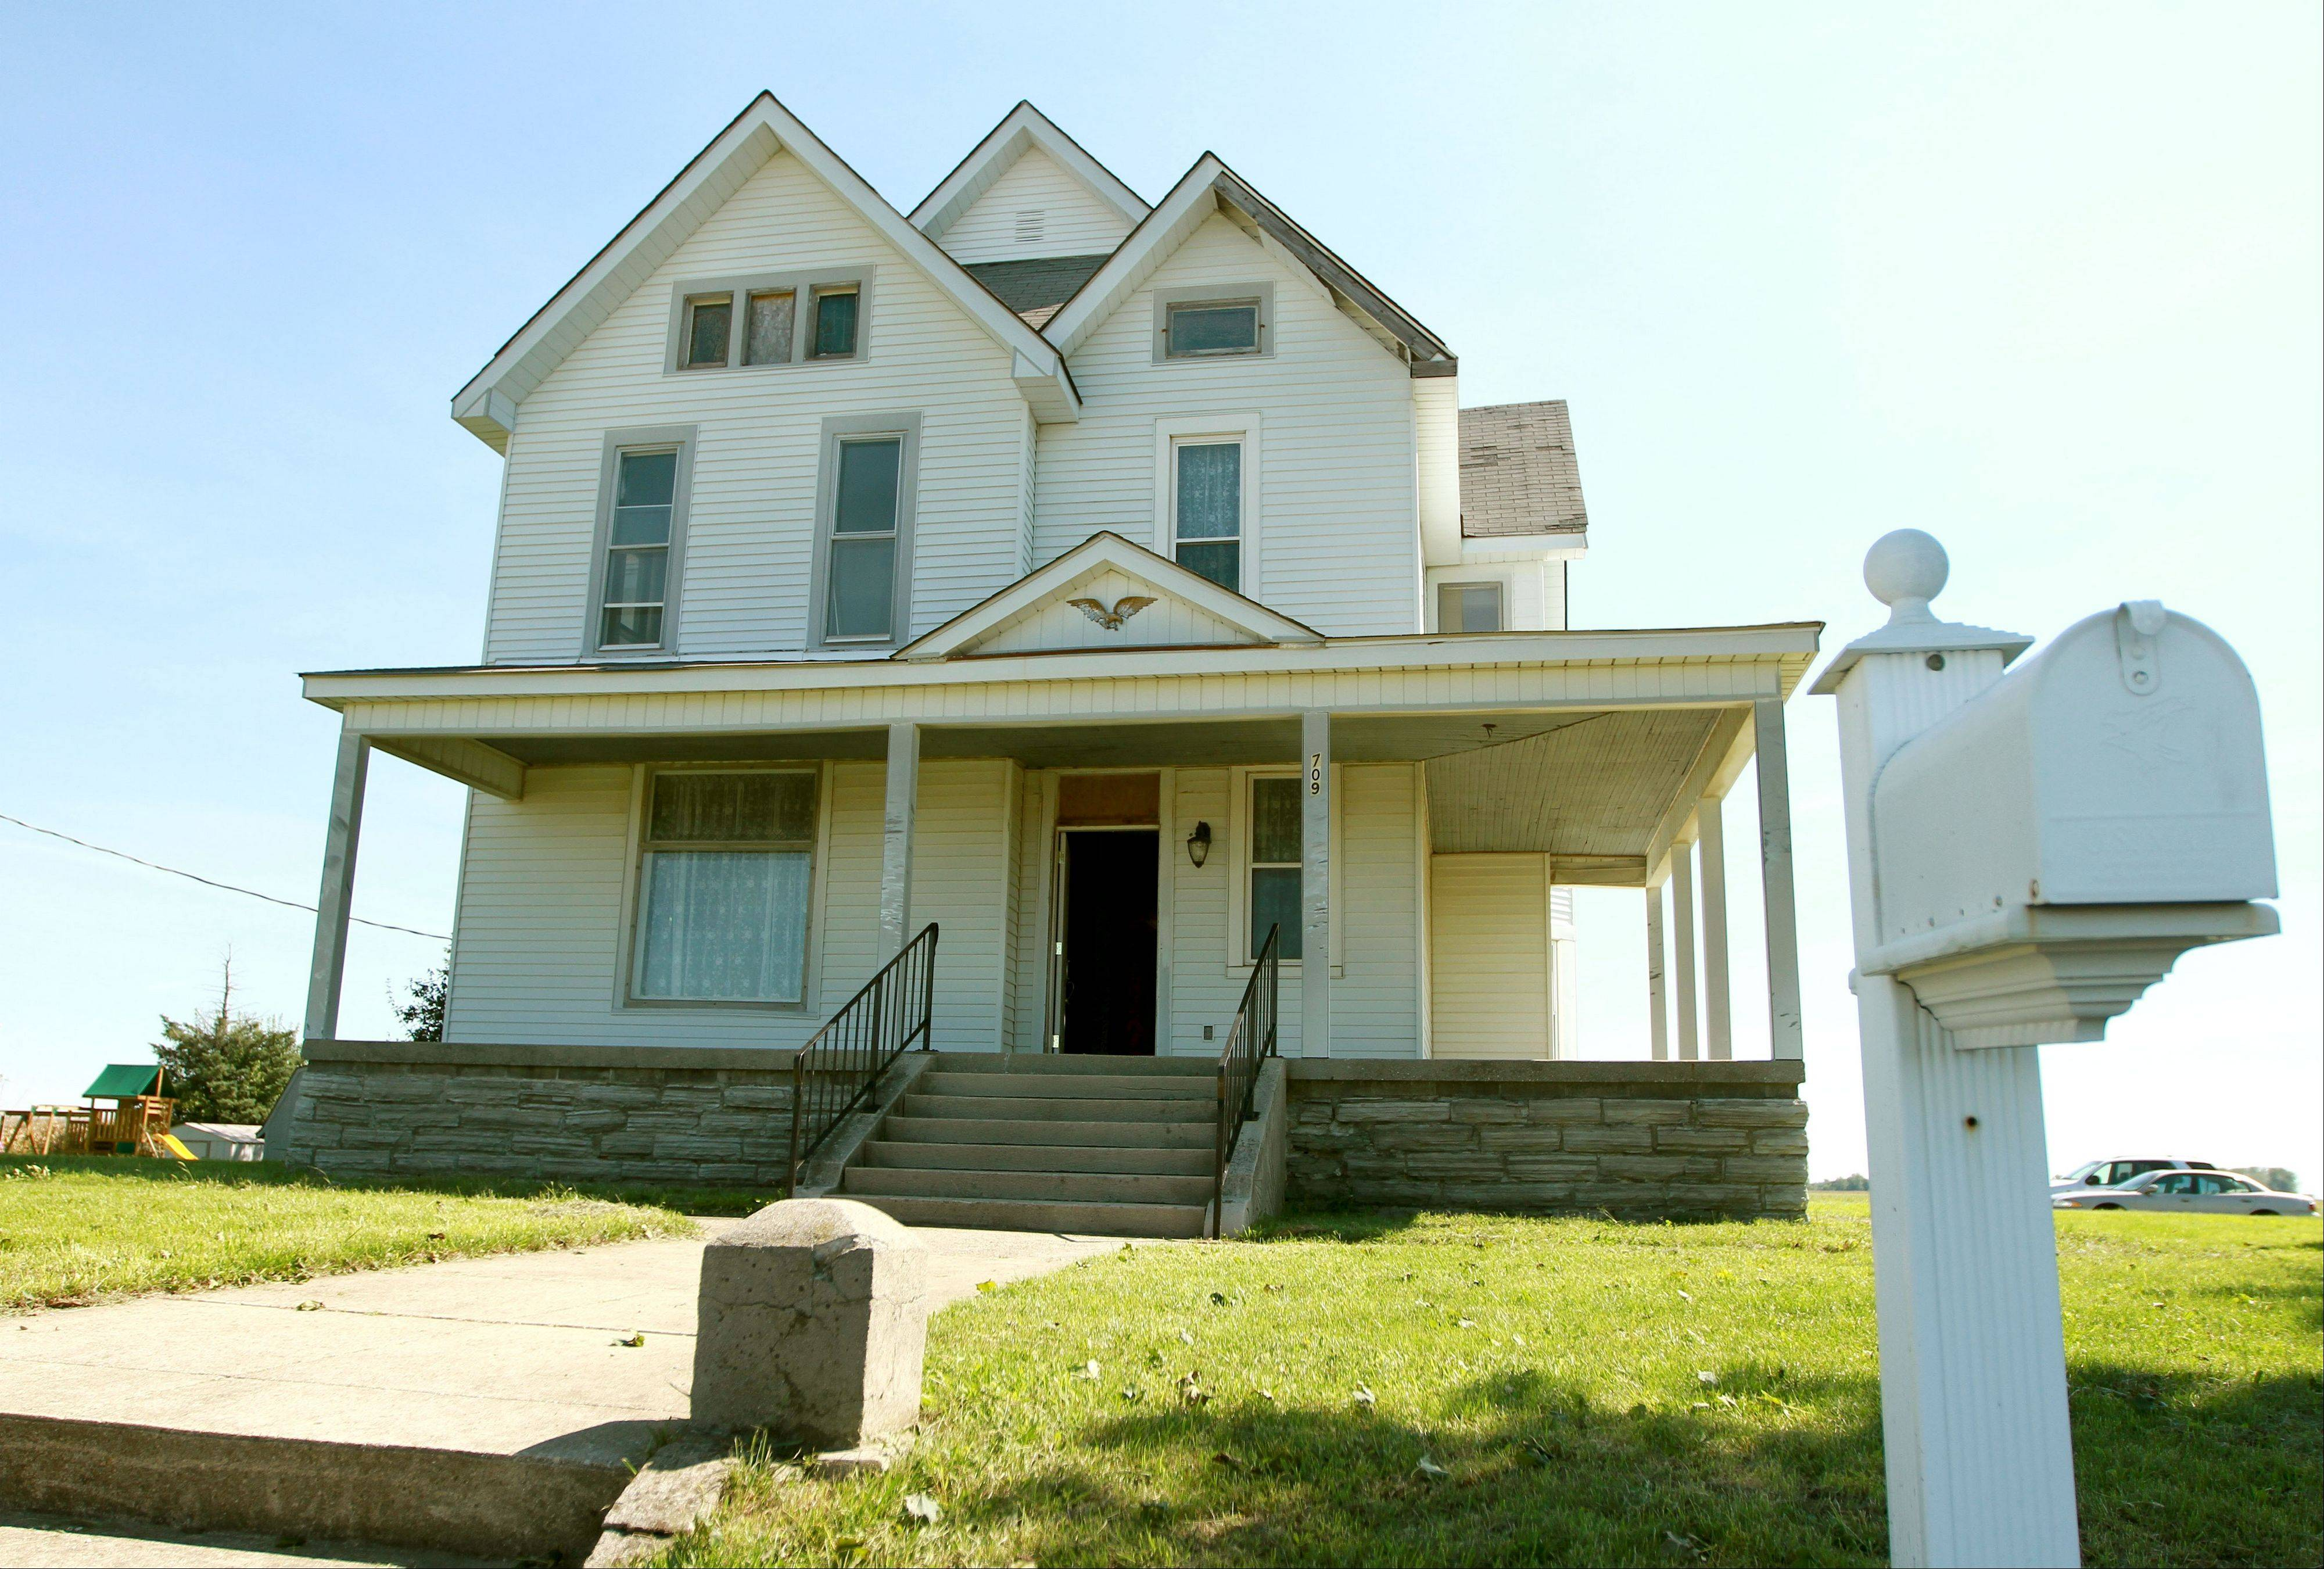 The Dunham house in Kempton, Ind., is the subject of a documentary film project about President Barack Obama's ancestral roots in Indiana.